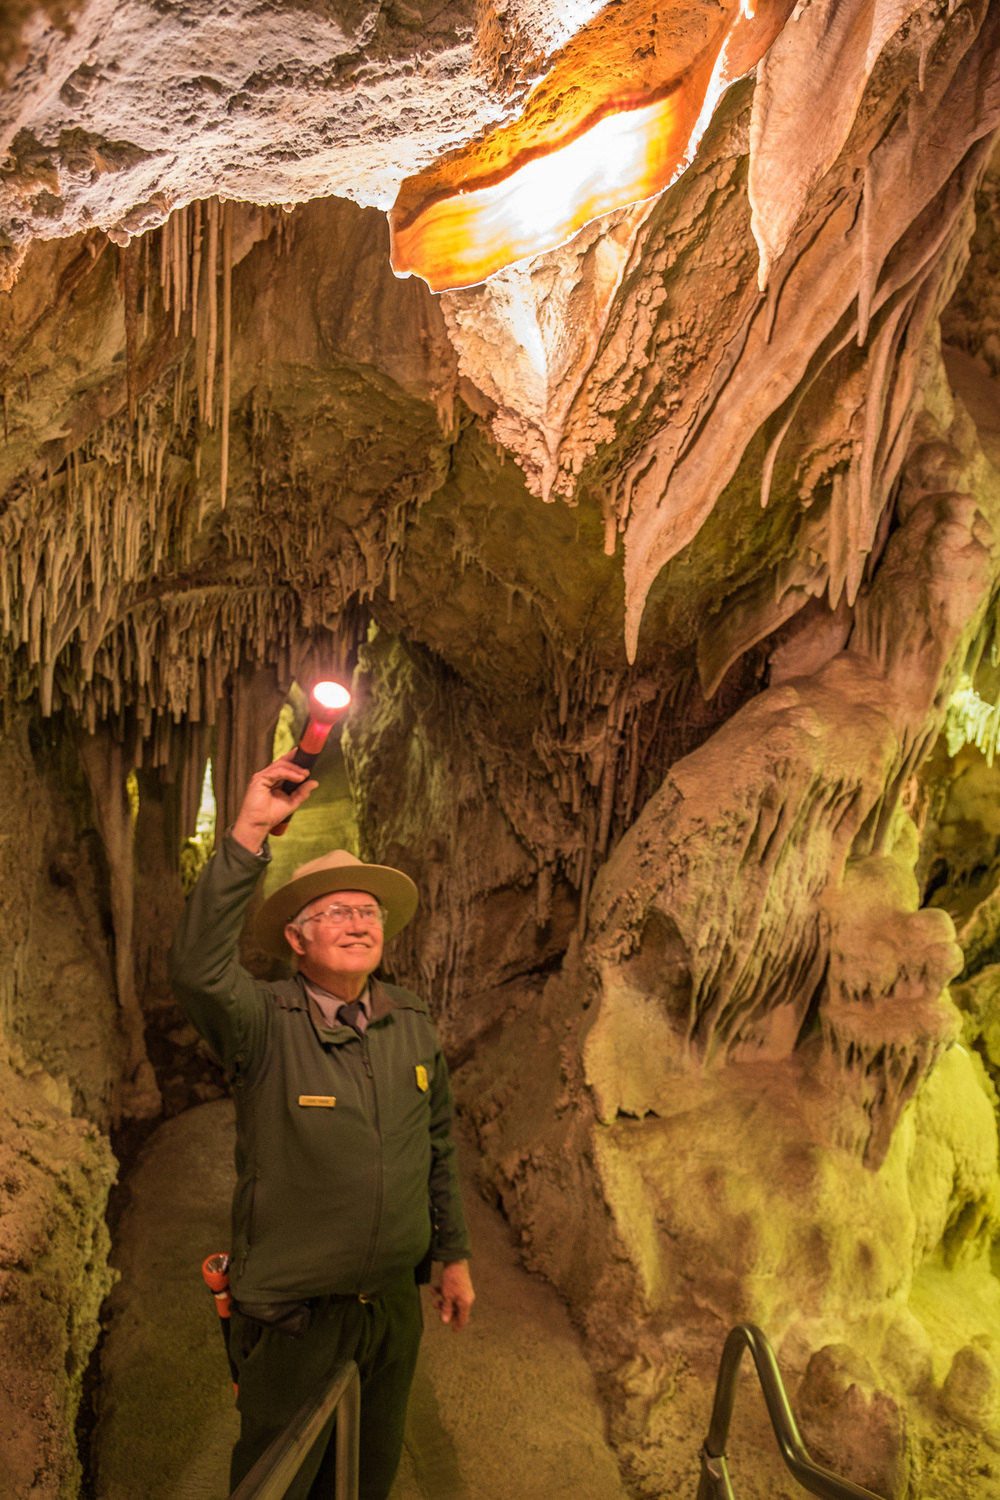 My awesome guide, Steve, shows me a great example of what has now become my favorite cave formation ever.....bacon!